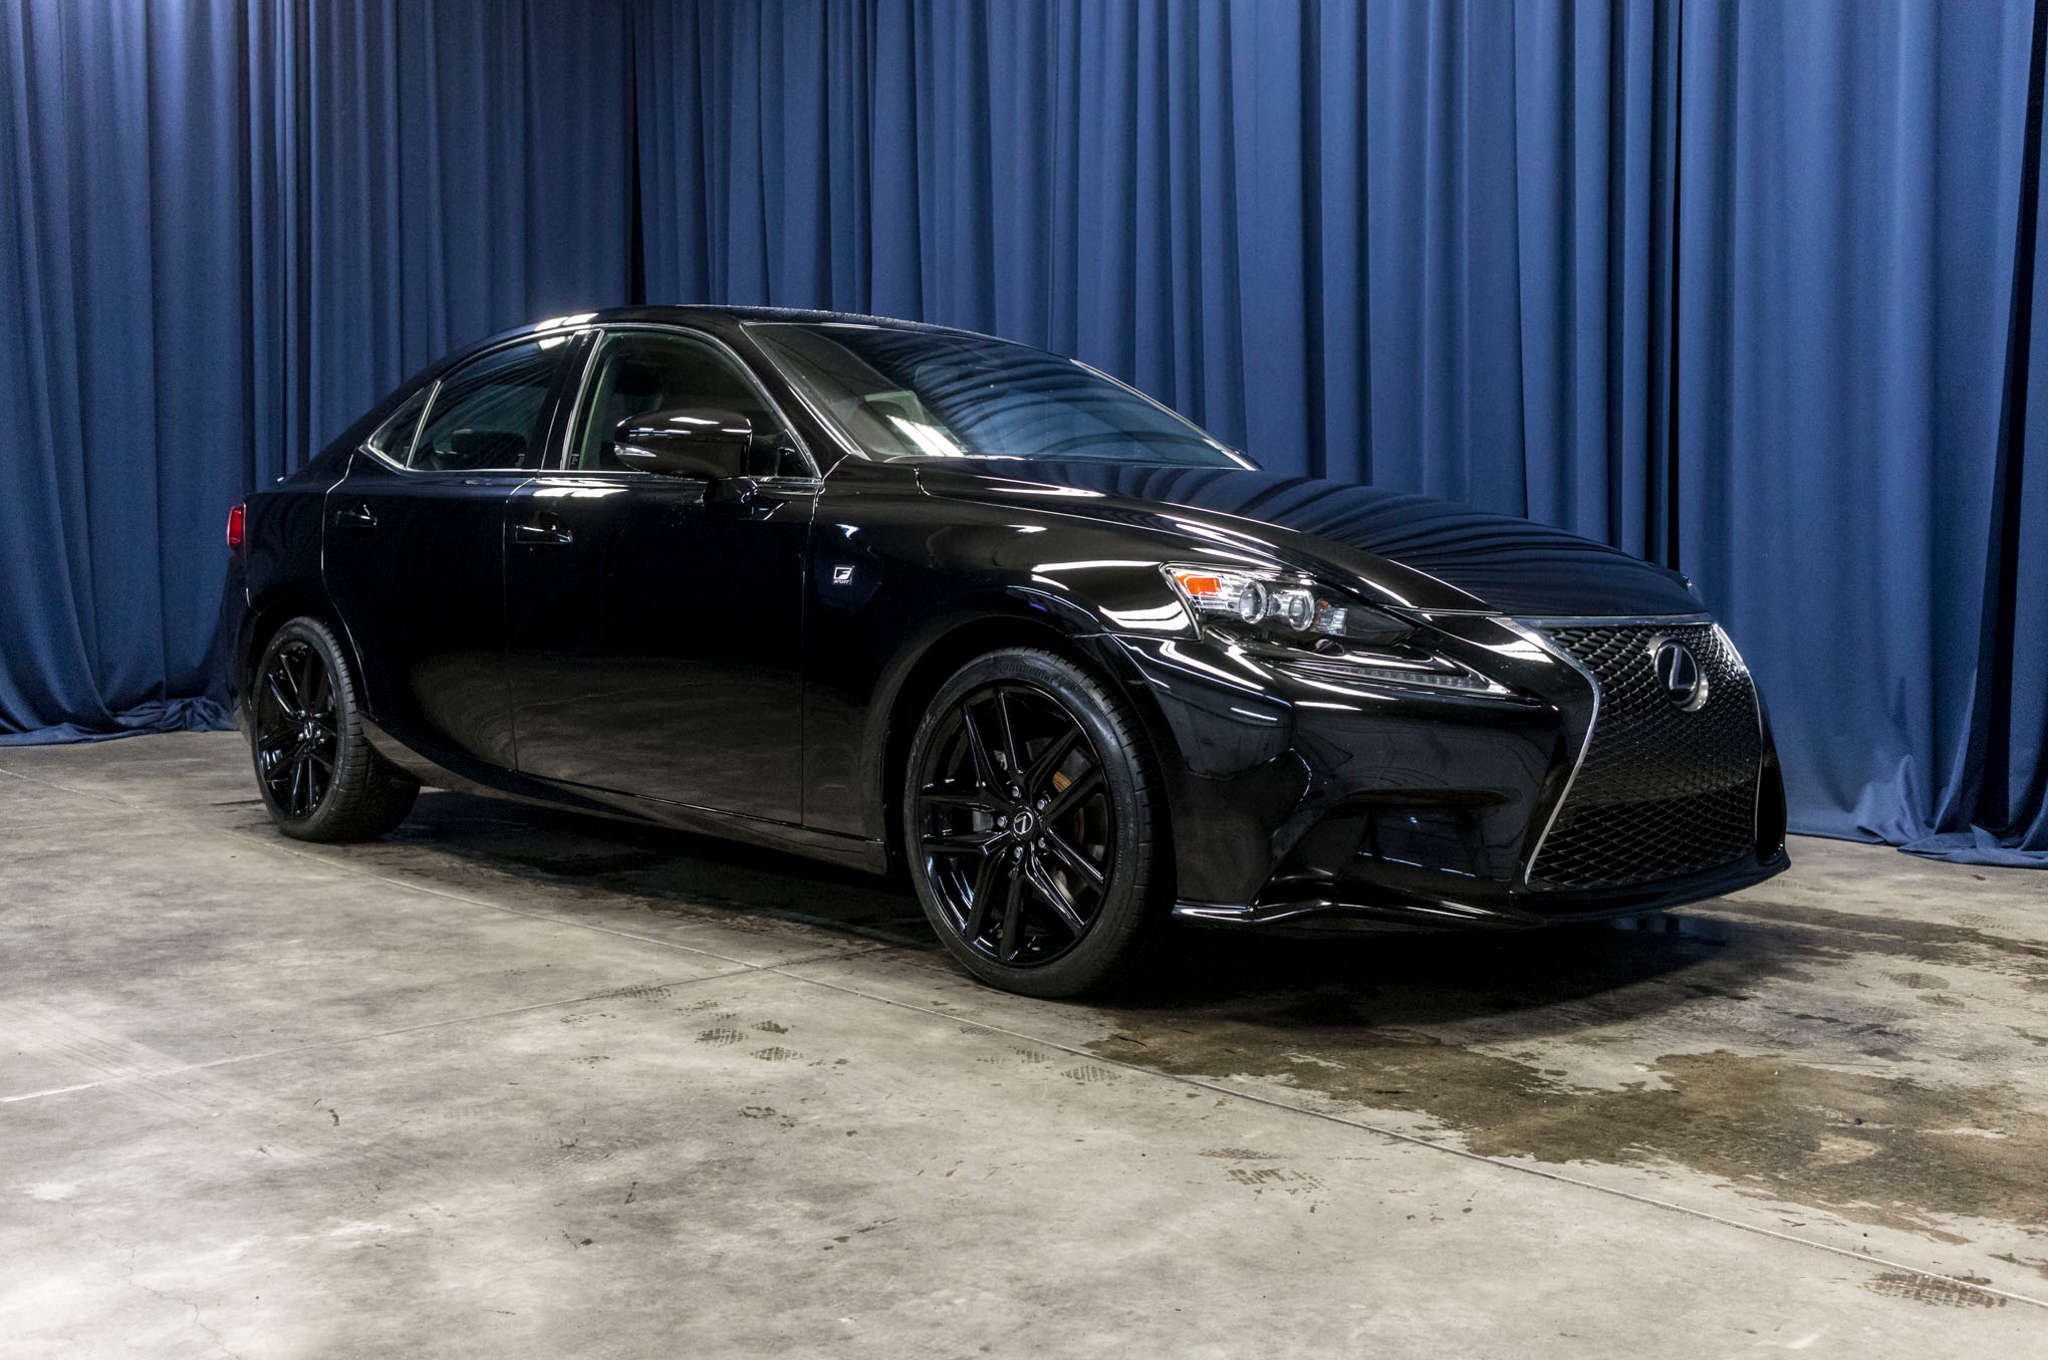 Lexus Is Sedan Base S Oem together with Jeep Wrangler Rubicon Xrc Smittybilt Lift C Bjwcg Fl as well Ford Mustang Gt Convertible Speed Fafp X F in addition Lexus Is With A Jz Gte as well Jeep Wrangler Unlimited Rubicon C Bjwfg El. on 2015 lexus is250 manual transmission